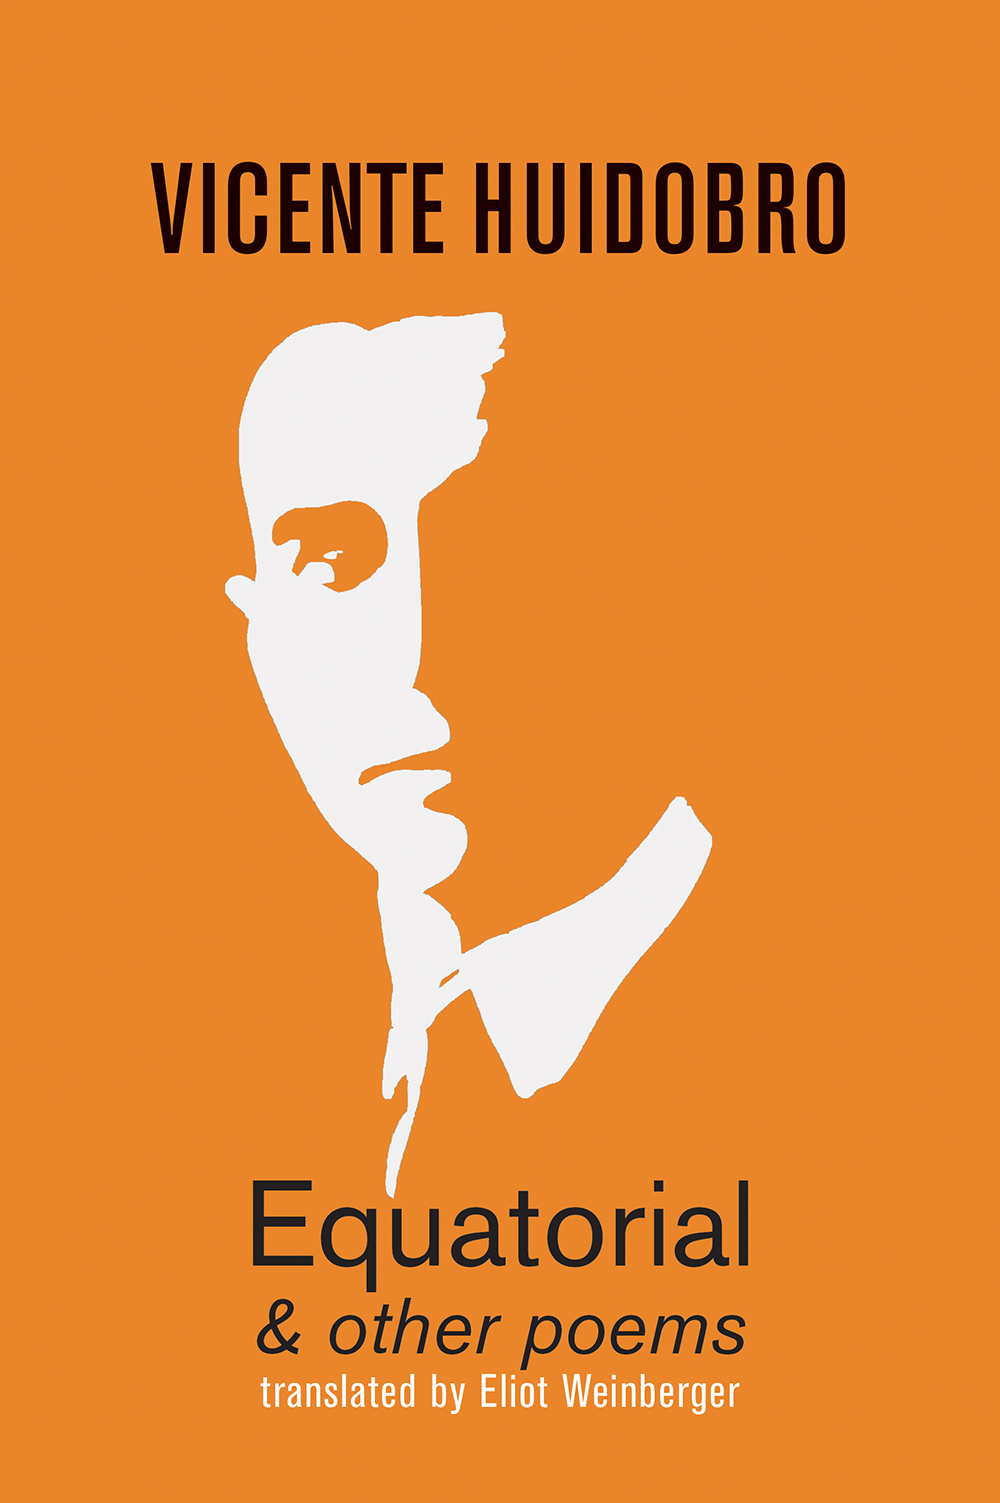 Equatorial and other poems